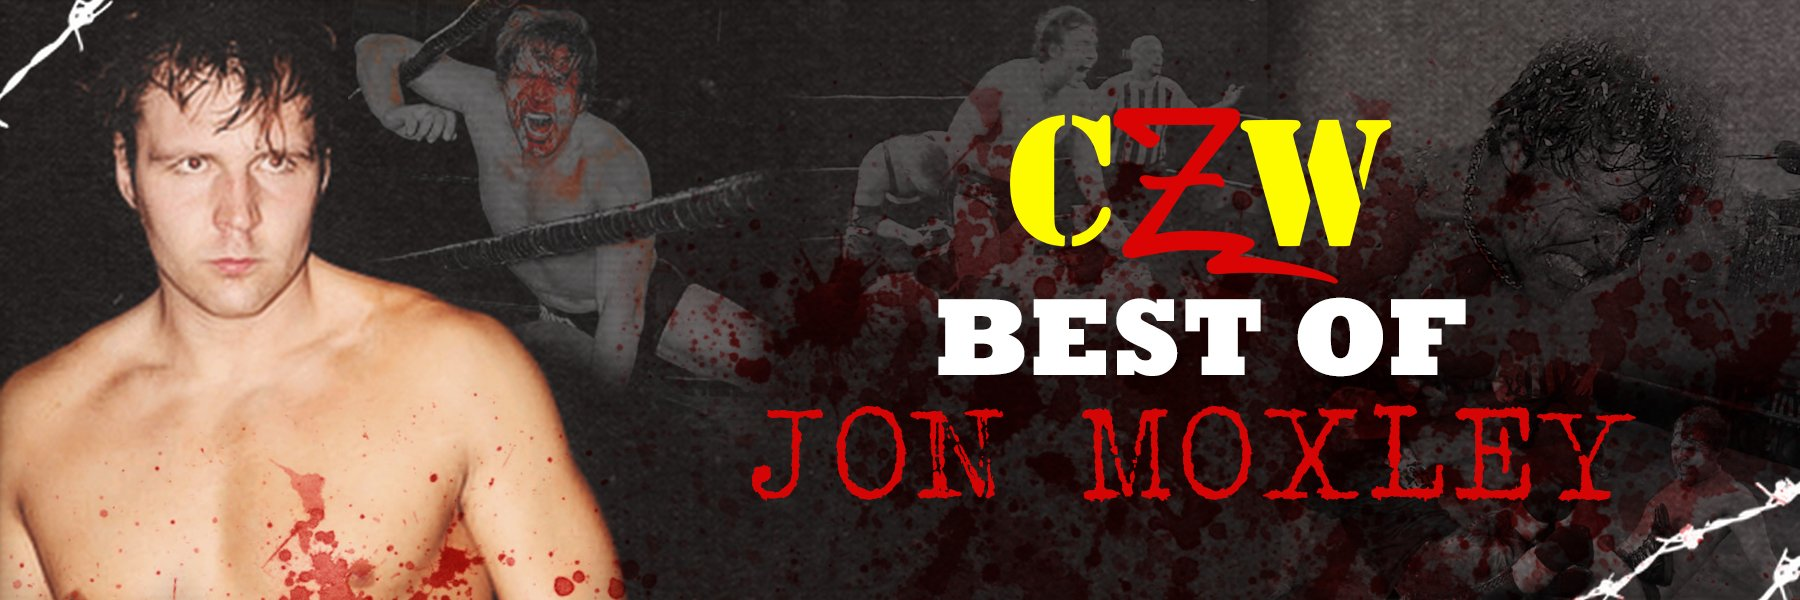 8 HOURS of the best of Jon Moxley in THE COMBAT ZONE!